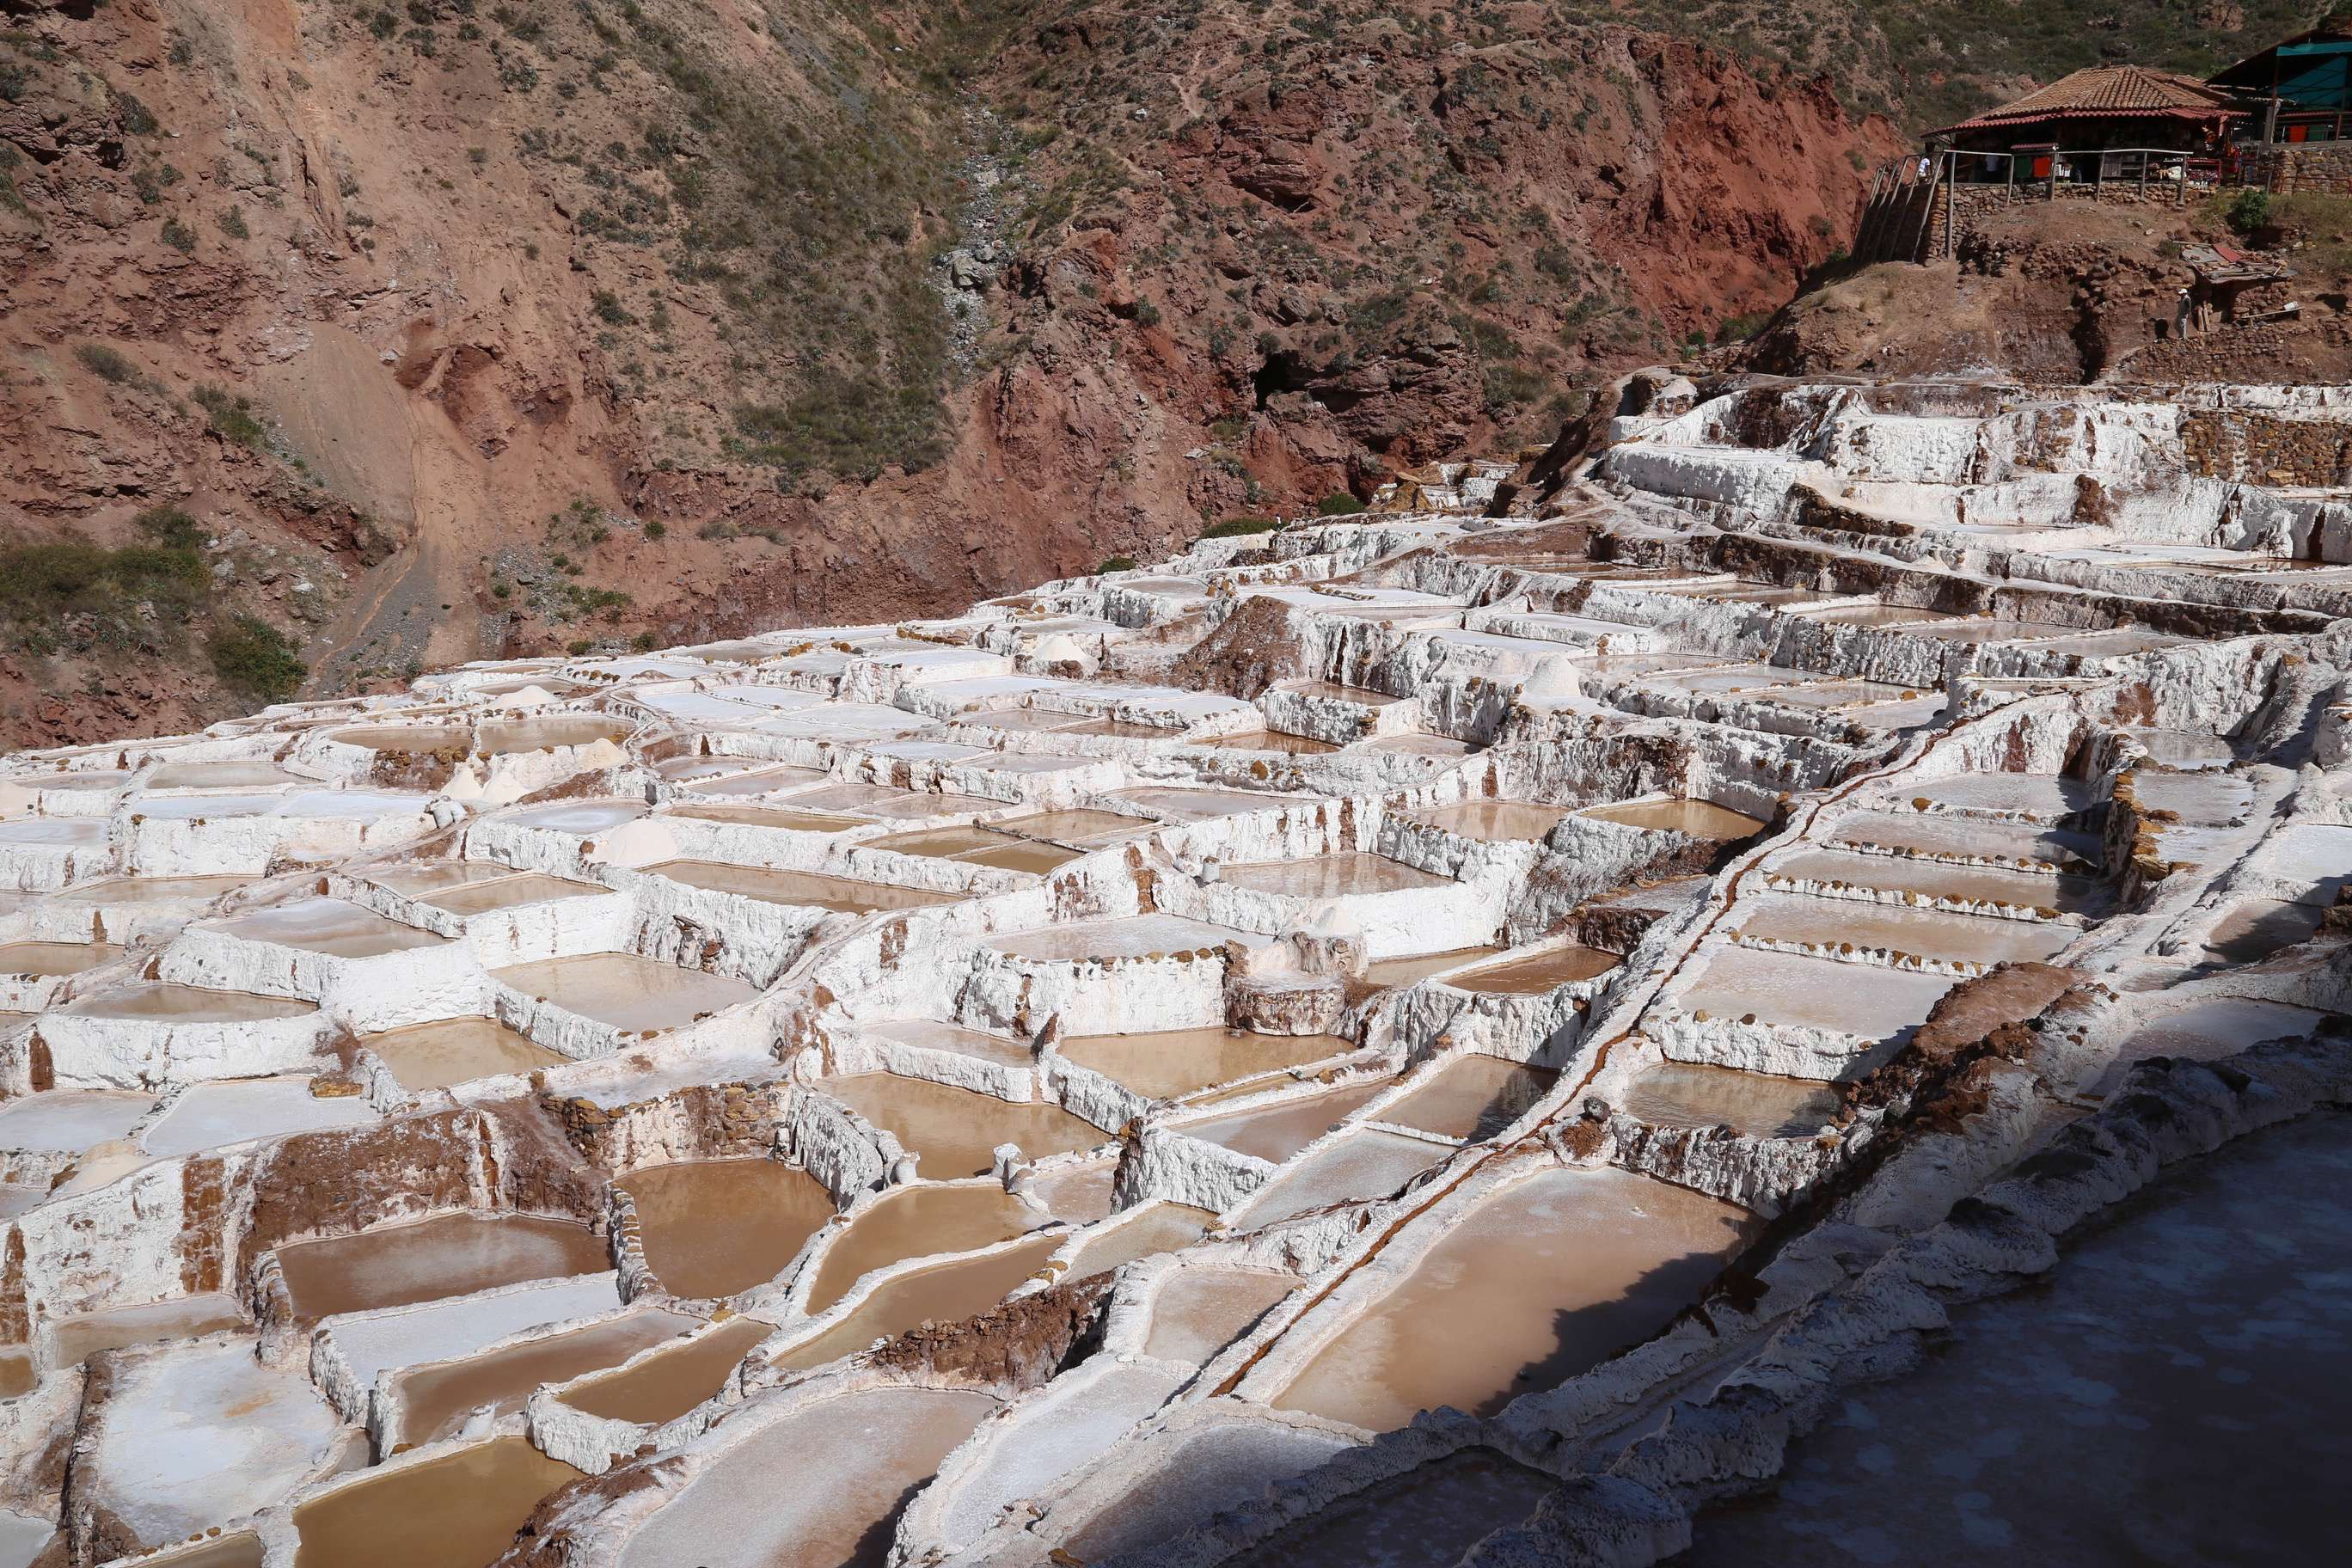 Before visitors get a chance to walk through the salt works, they pass by the vendors, top right, who sell small packet of salt from Maras, Peru.